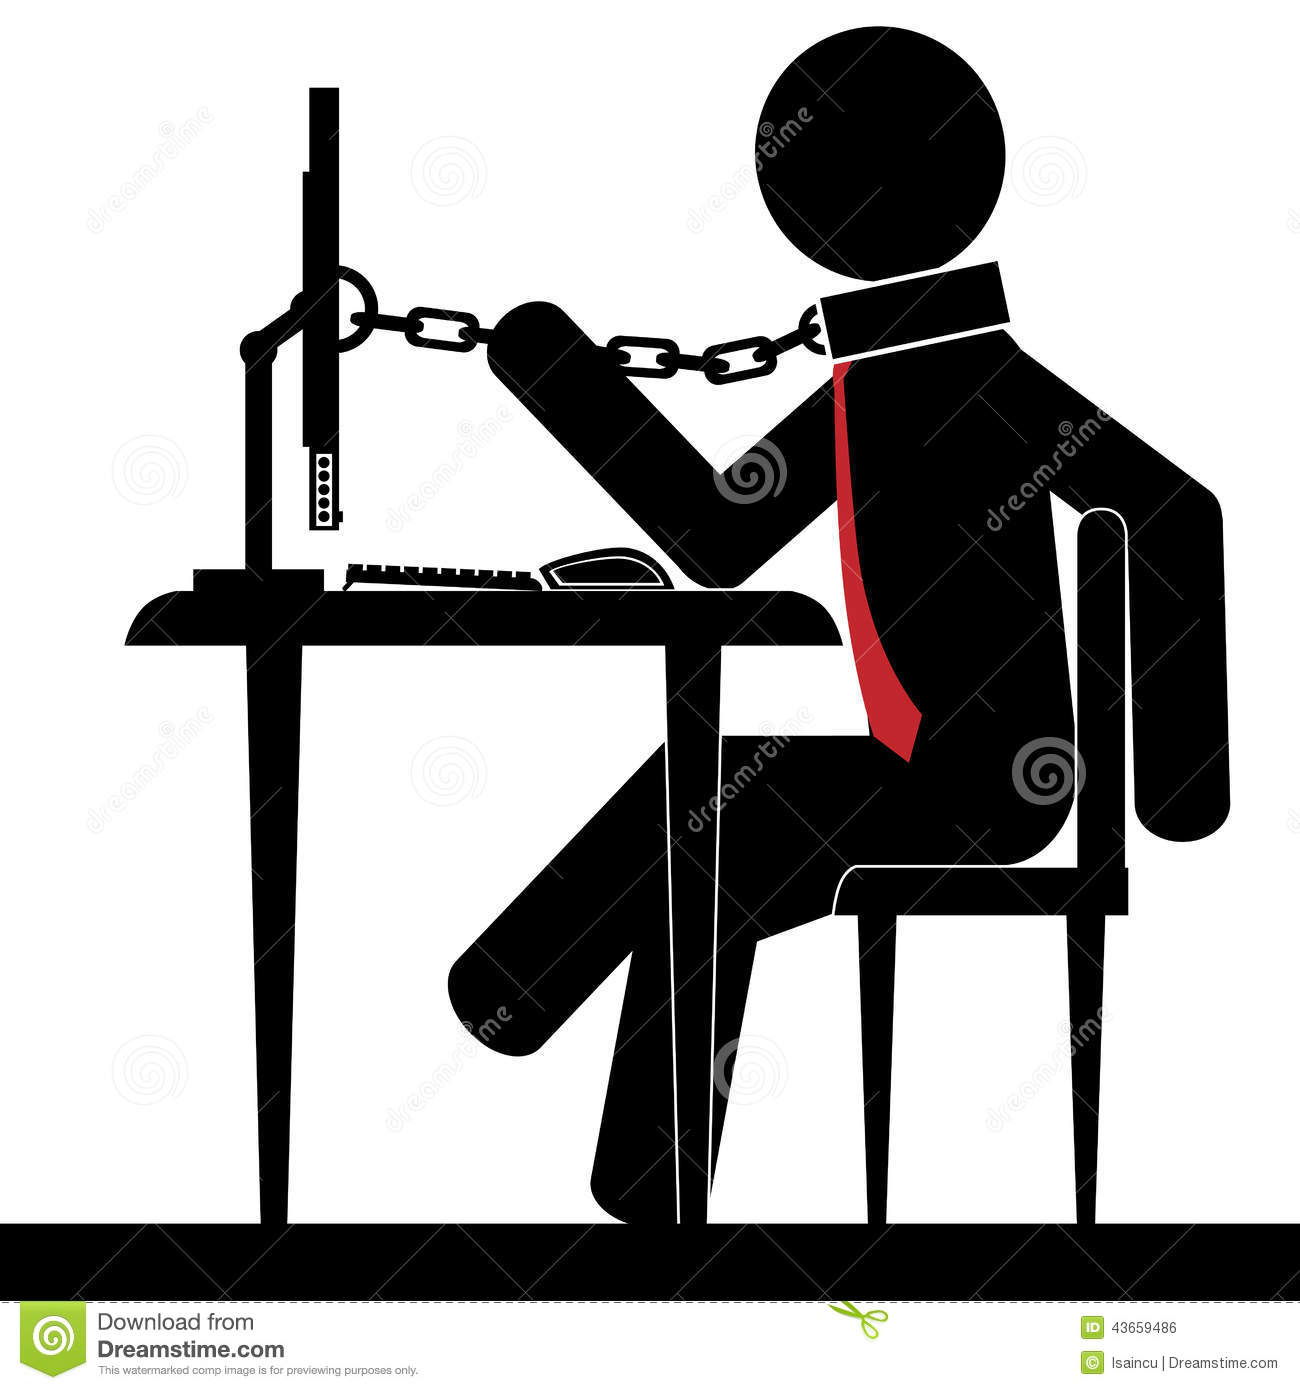 Stock Illustration Chained To Office Man Desk Stick Figure Vector Image43659486 moreover Stock Illustration D White People School Desk Education Objects Illustration Blackboard Globe Concept Background Image69121562 besides Royalty Free Stock Photos Round Table Discussion Image10350178 also Stock Illustration Cartoon Businessman  plete Process Illustration Image41833684 also Stock Photography Lazy Businesswoman Student Image7017692. on xl desk chair